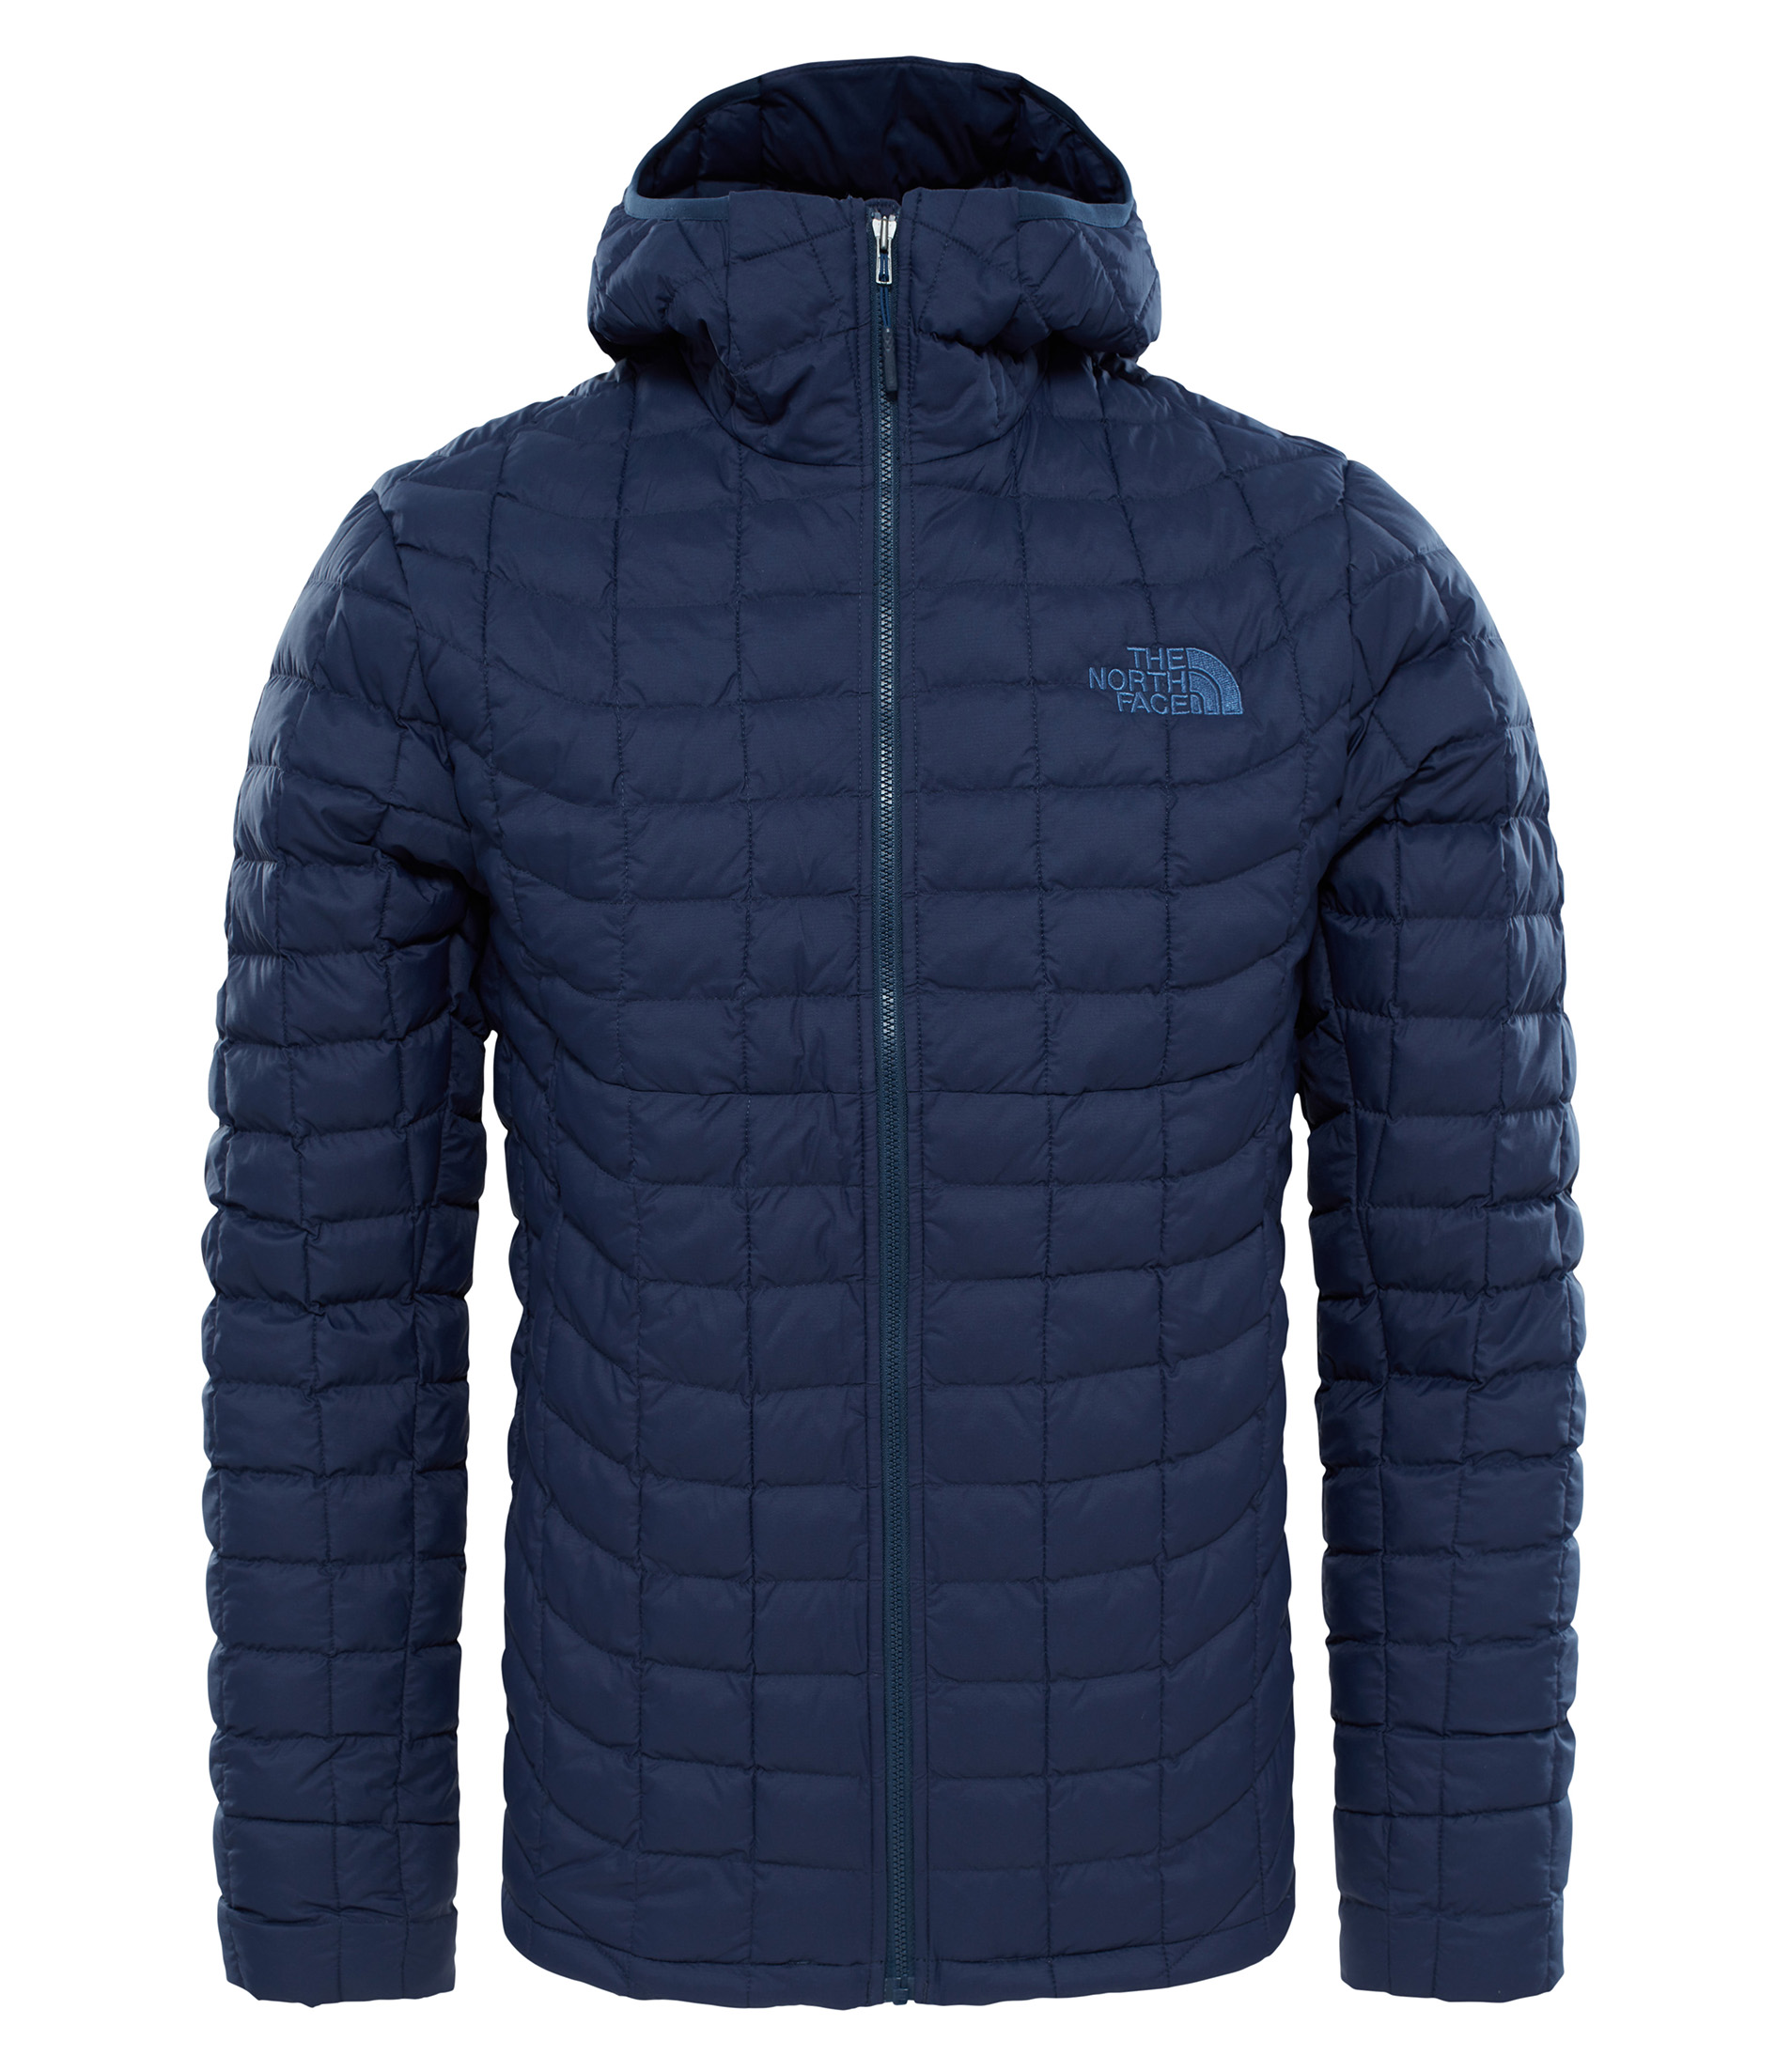 The North Face Thermoball Jacket Hooded | Jackets